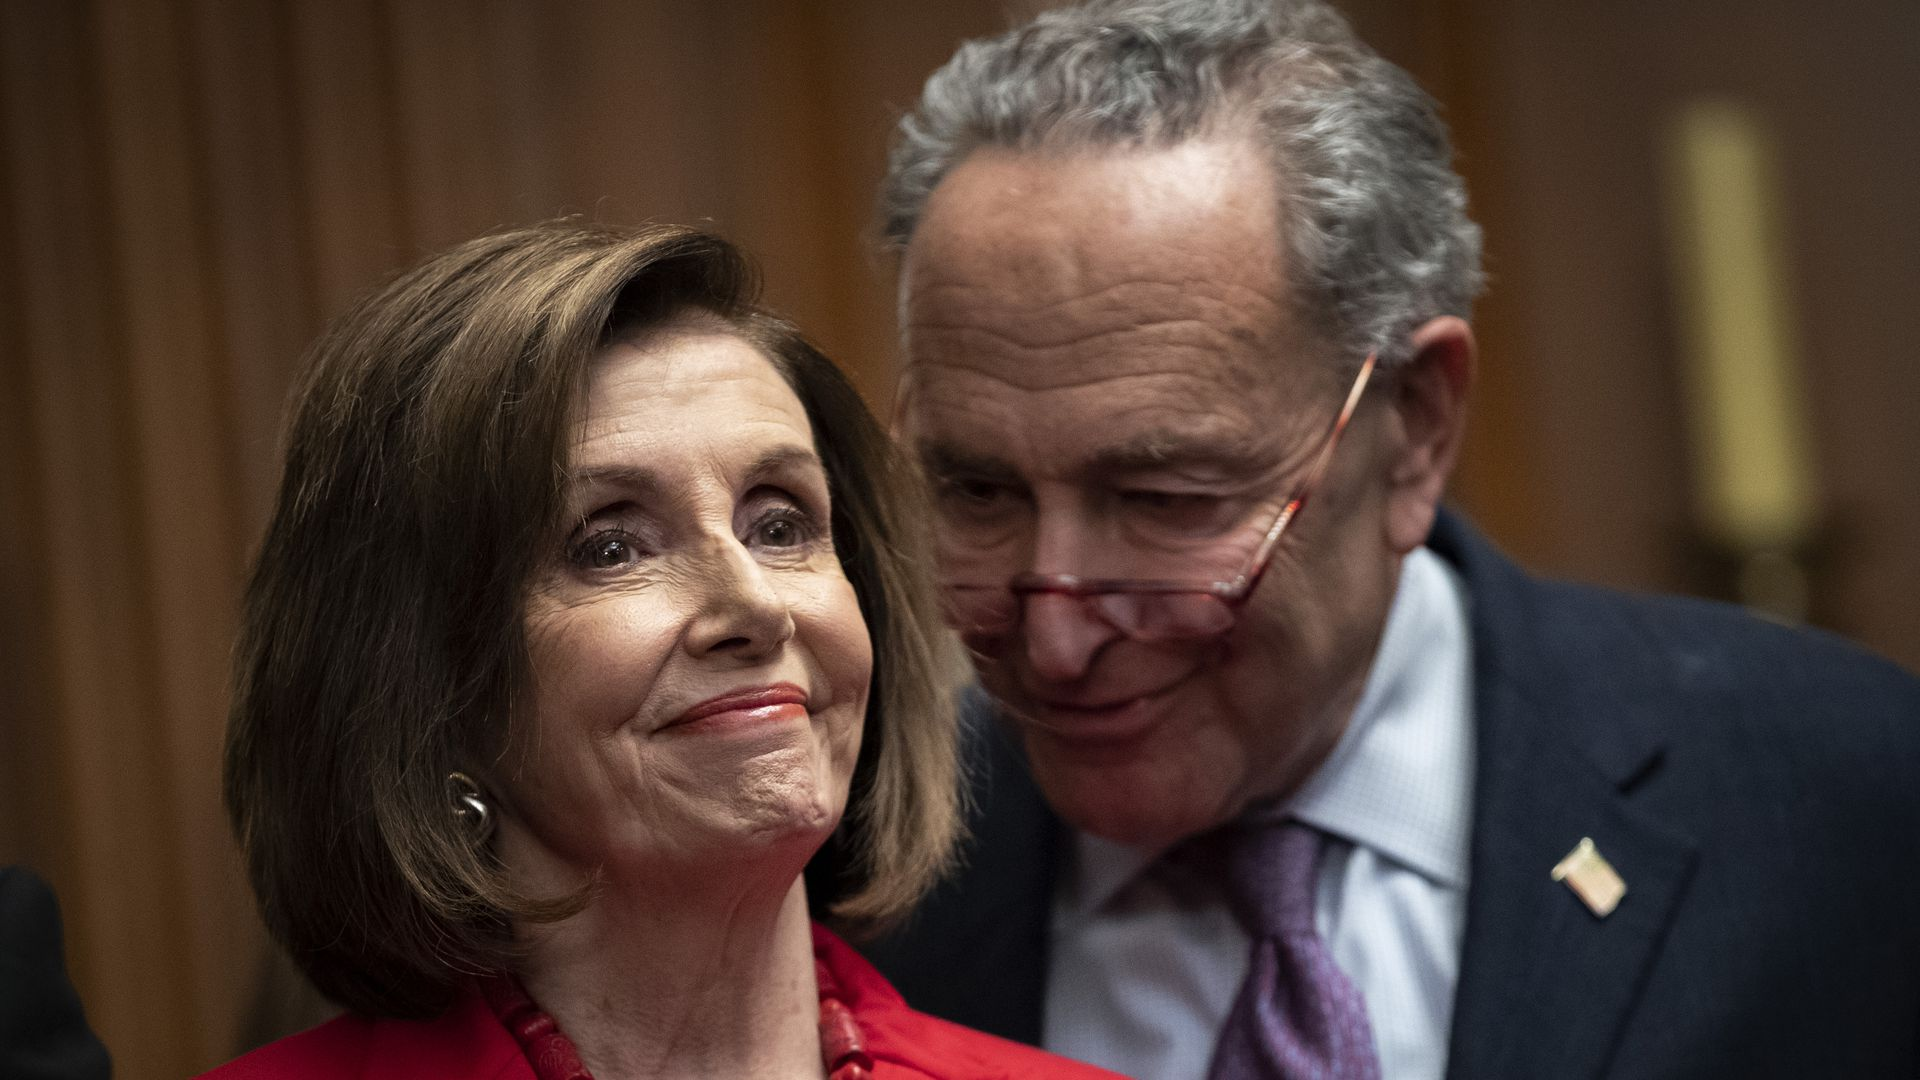 House Speaker Nancy Pelosi and Senate Minority Leader Chuck Schumer stand next to one another at a news conference.